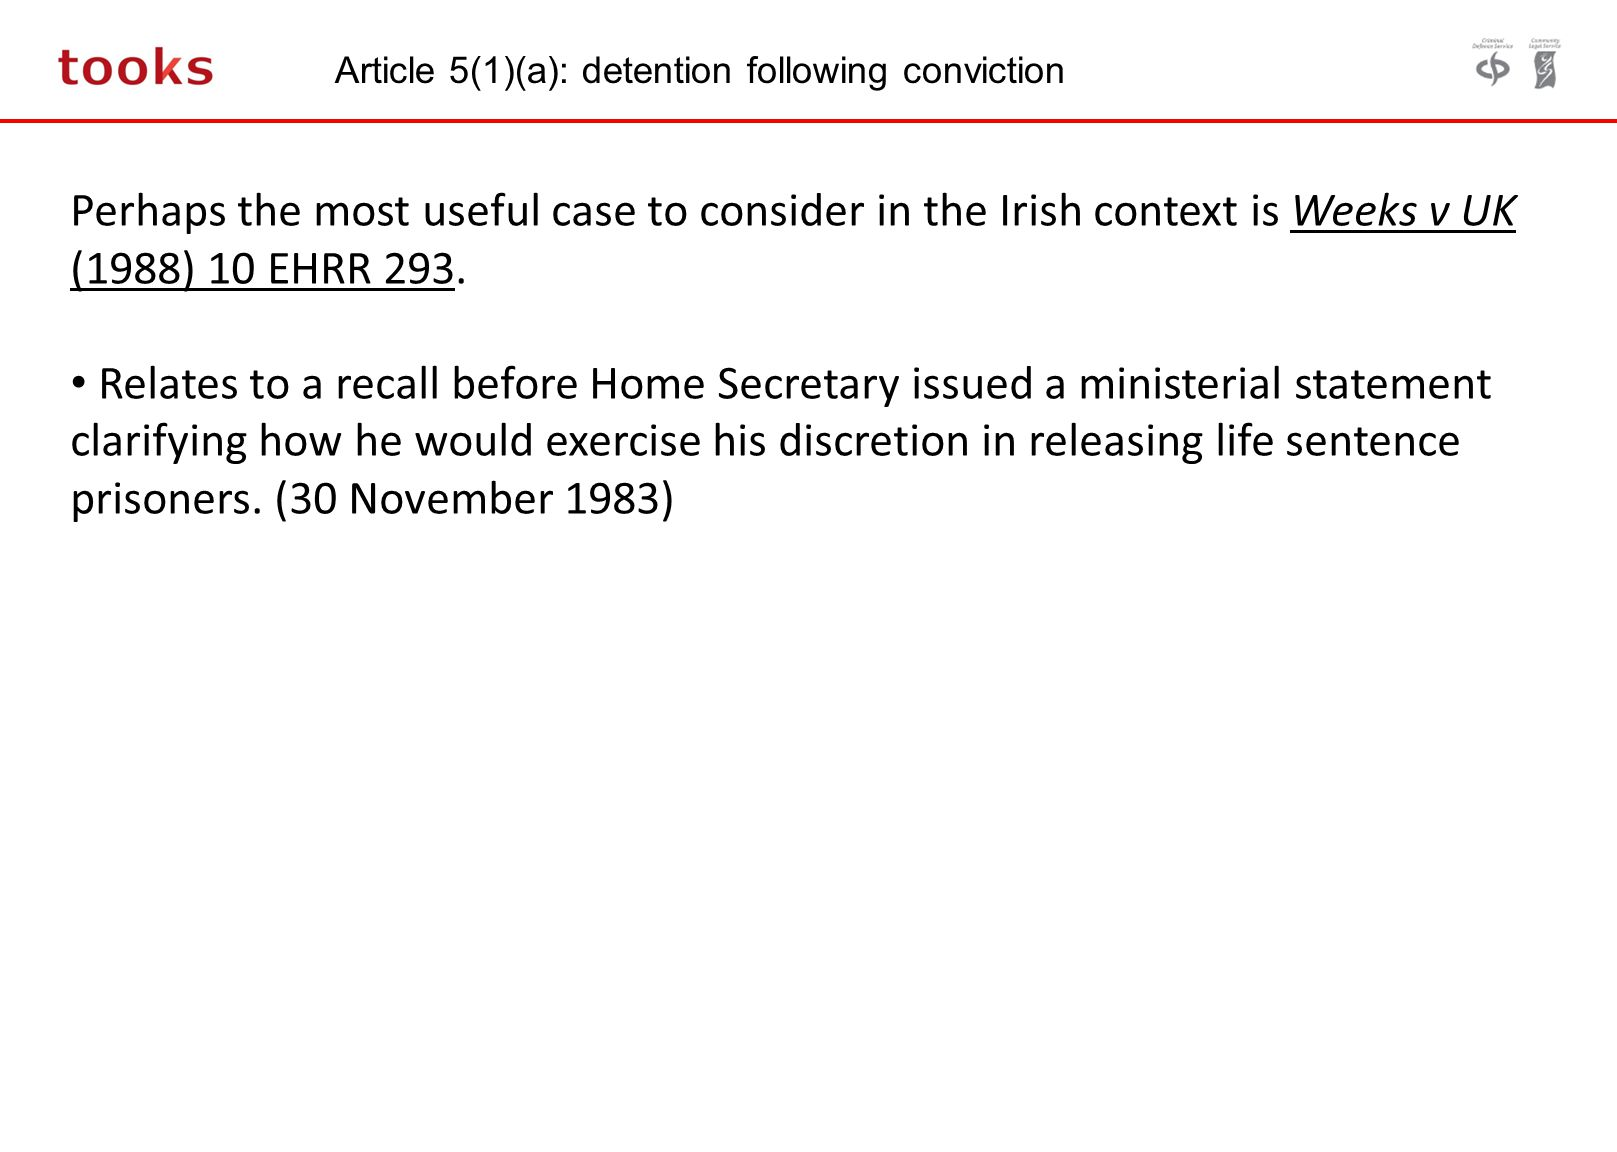 Article 5(1)(a): detention following conviction Perhaps the most useful case to consider in the Irish context is Weeks v UK (1988) 10 EHRR 293.